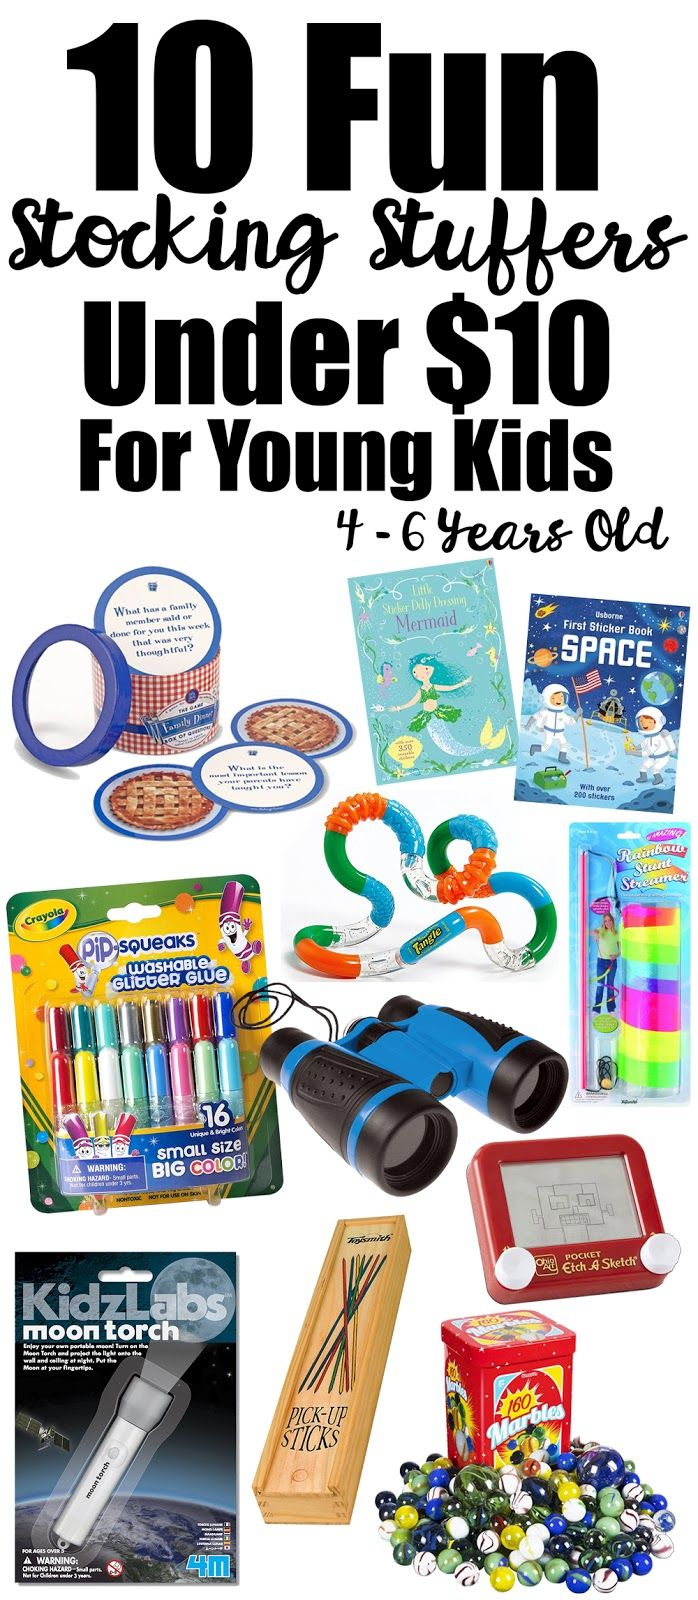 Love, Joleen: 10 Fun Stocking Stuffers Under $10 for Young Kids Ages 4 to 6 Years Old | Cheap Stocking Stuffers | Stocking Stuffers for Kids | Christmas Gifts | Gift Ideas